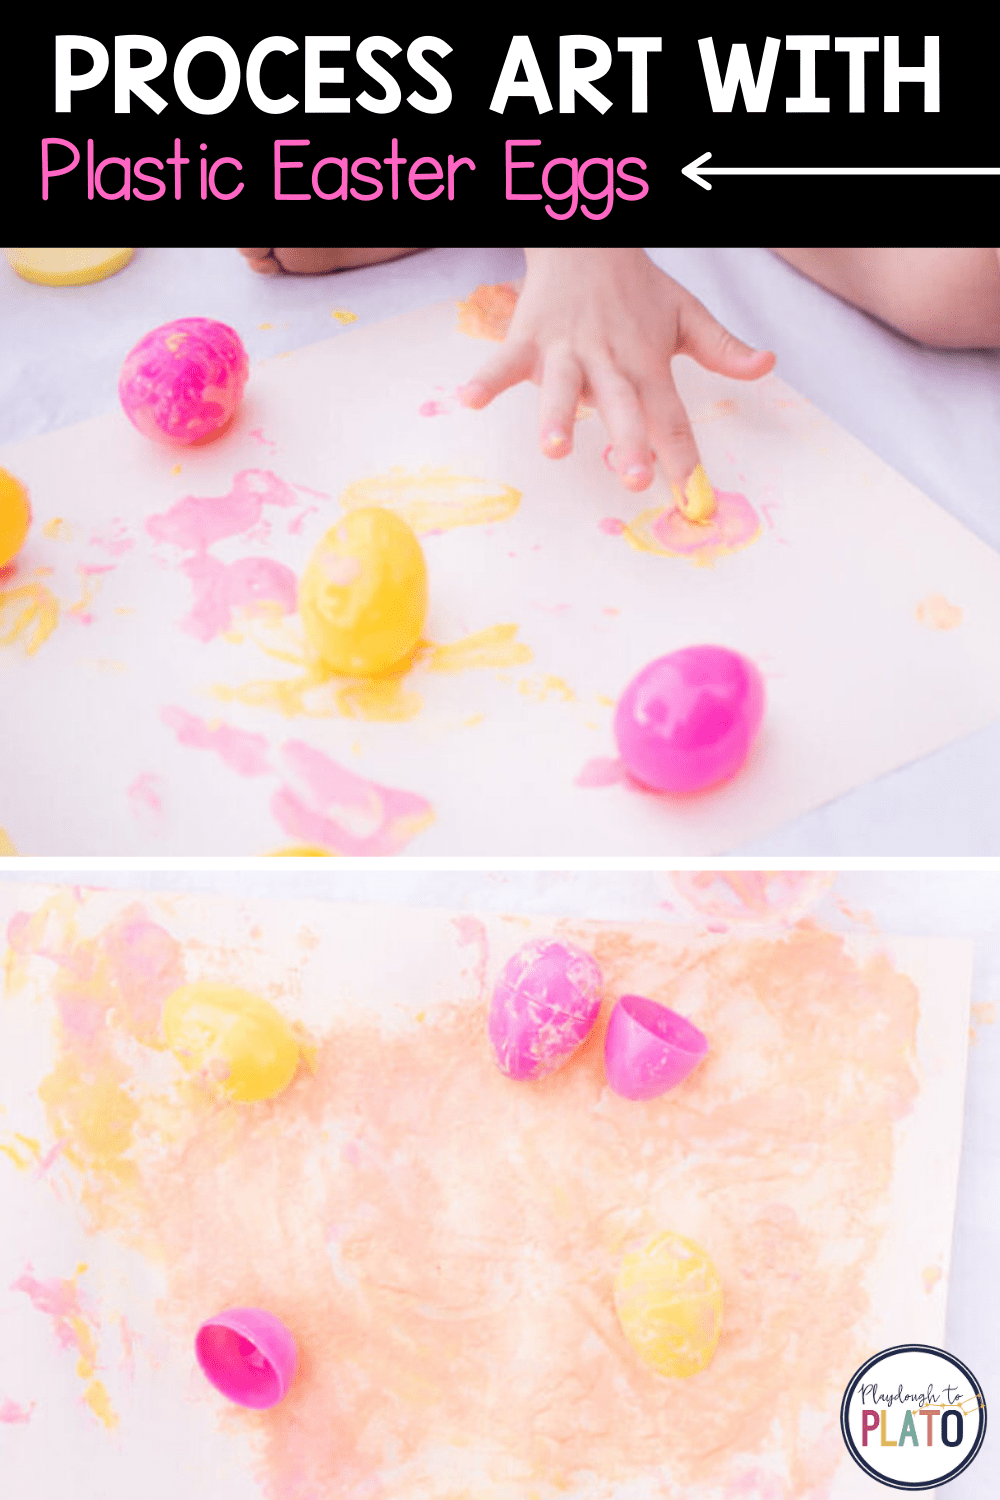 Process Art Activity with Plastic Easter Eggs